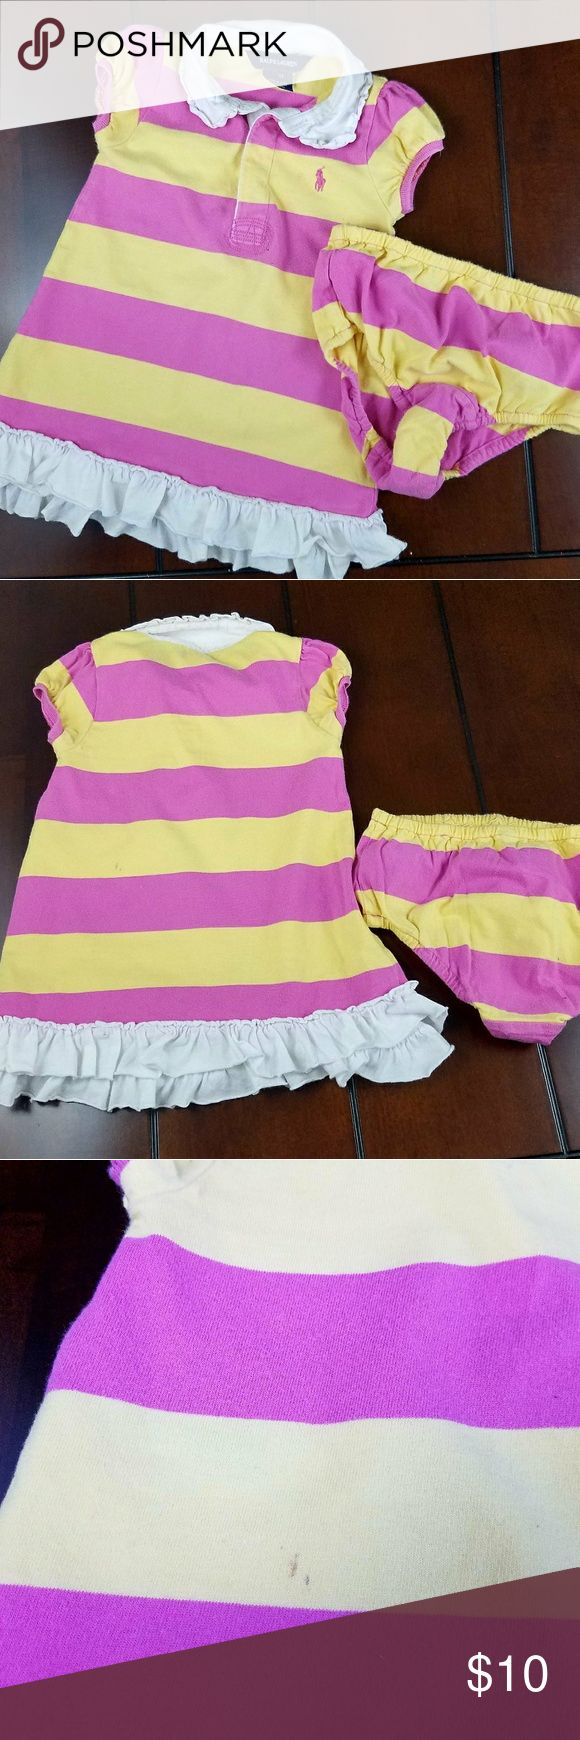 RALPH Lauren Ruffle Polo Dress Available pre-loved in size 18 months there are no holes and no tears but a few lights things as pictured. Features invisible 2 button placket, ruffle color, short sleeves, and ruffle hem, pink embroidered logo. 100% cotton. Machine washable. Pink/Yellow/White Ralph Lauren Dresses Casual